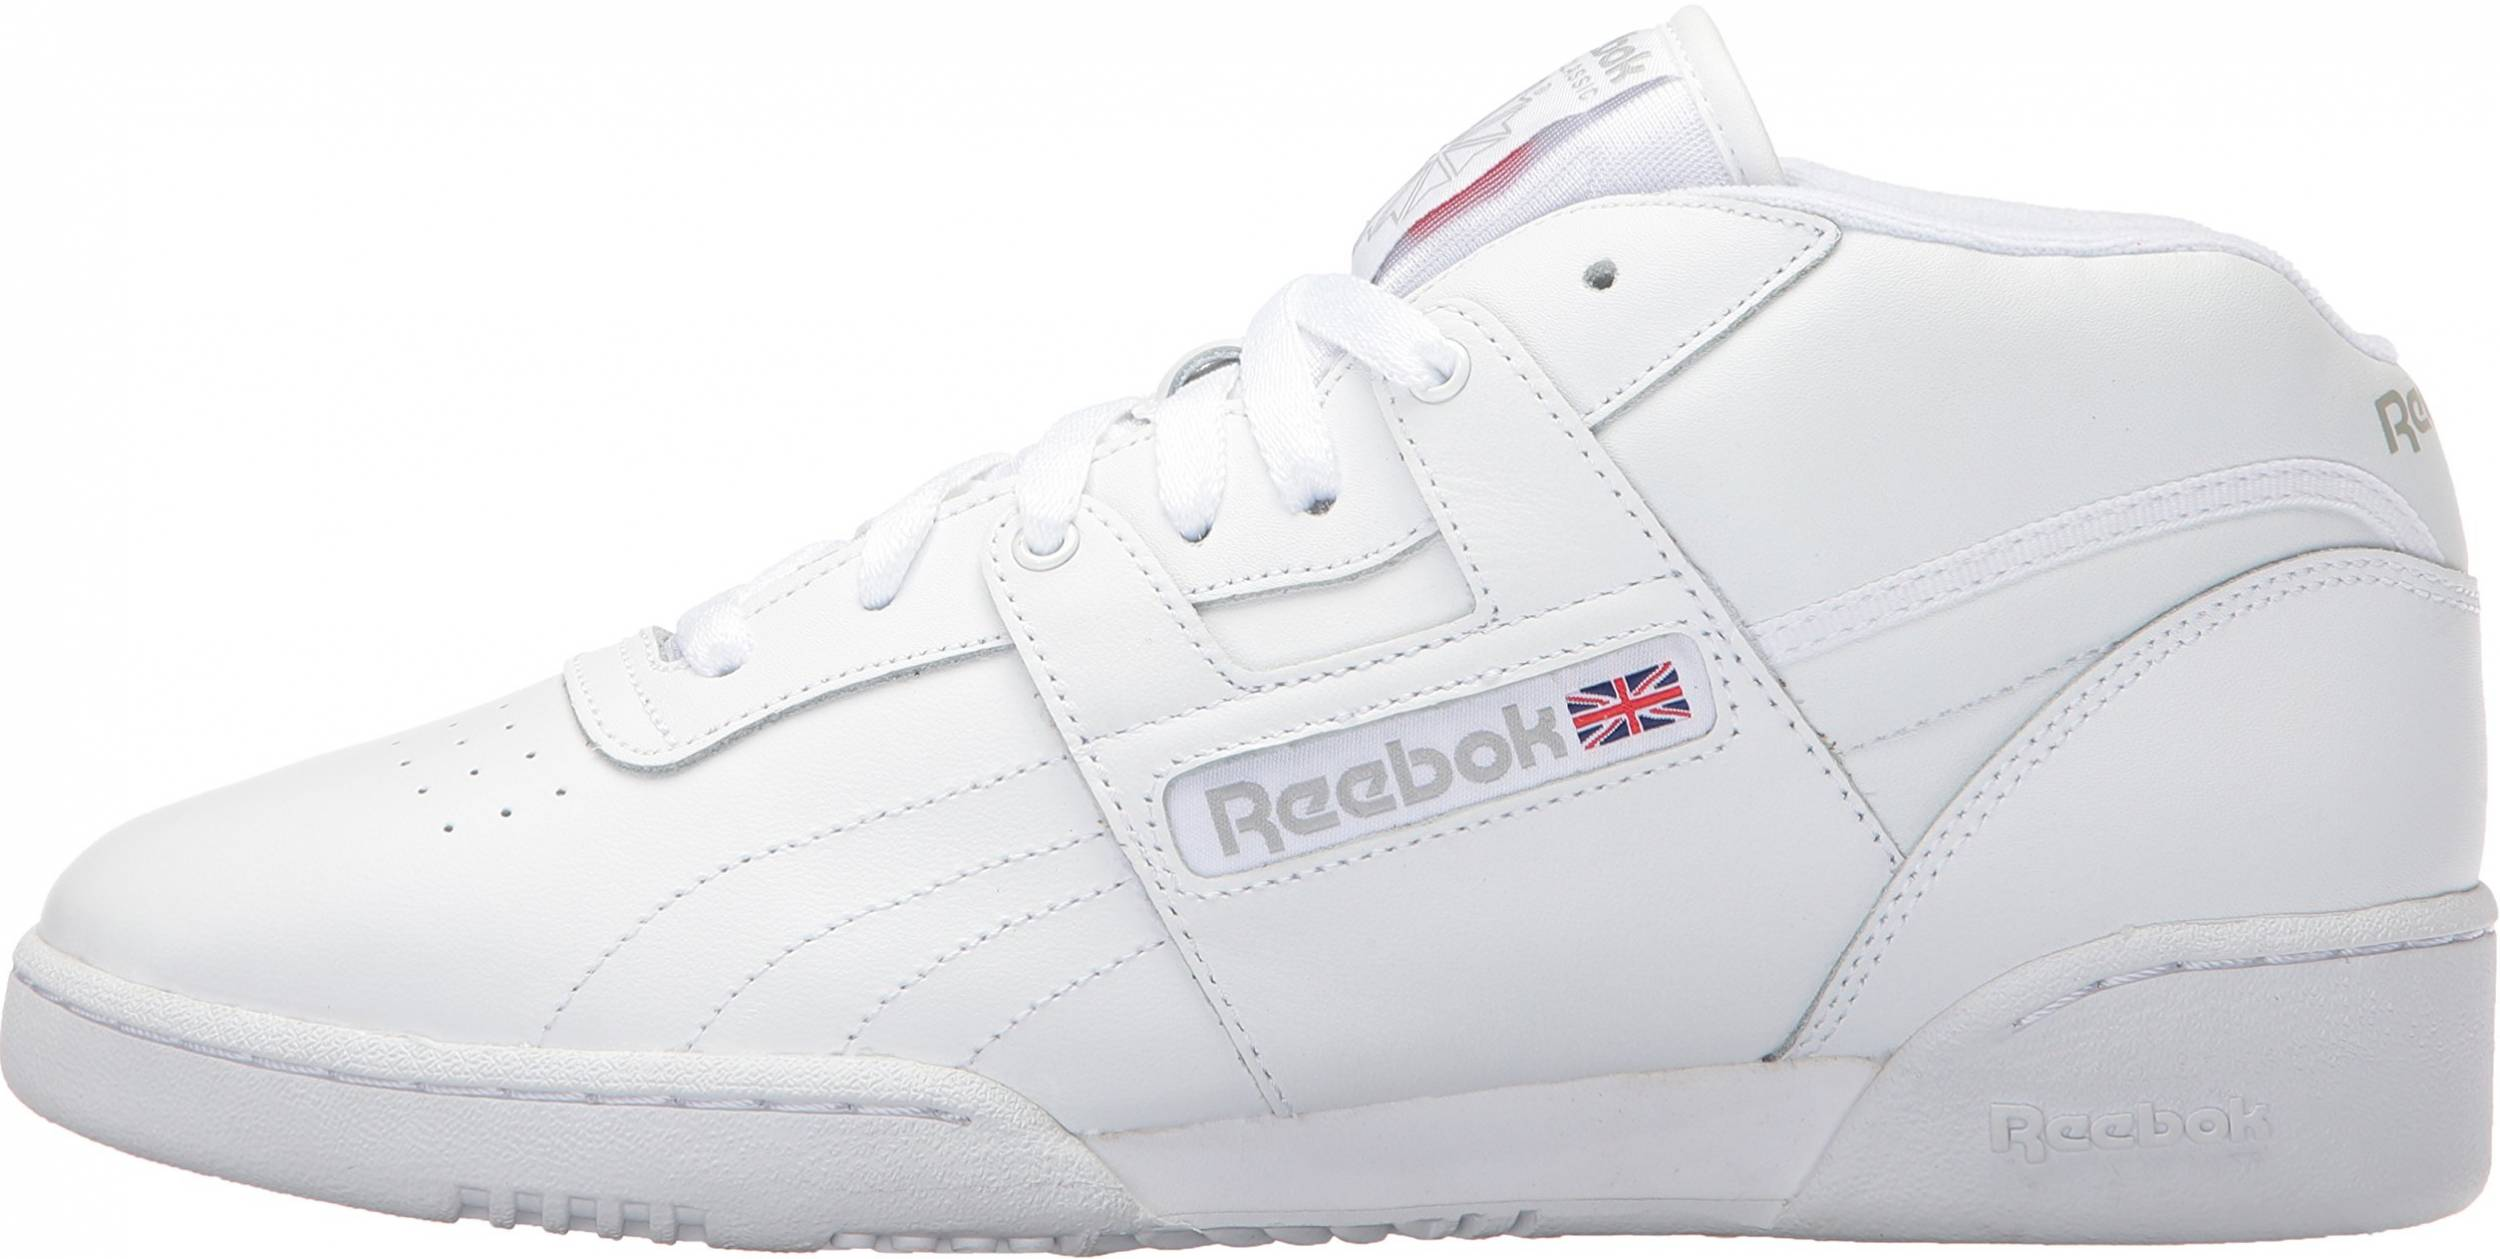 where to buy reebok sneakers